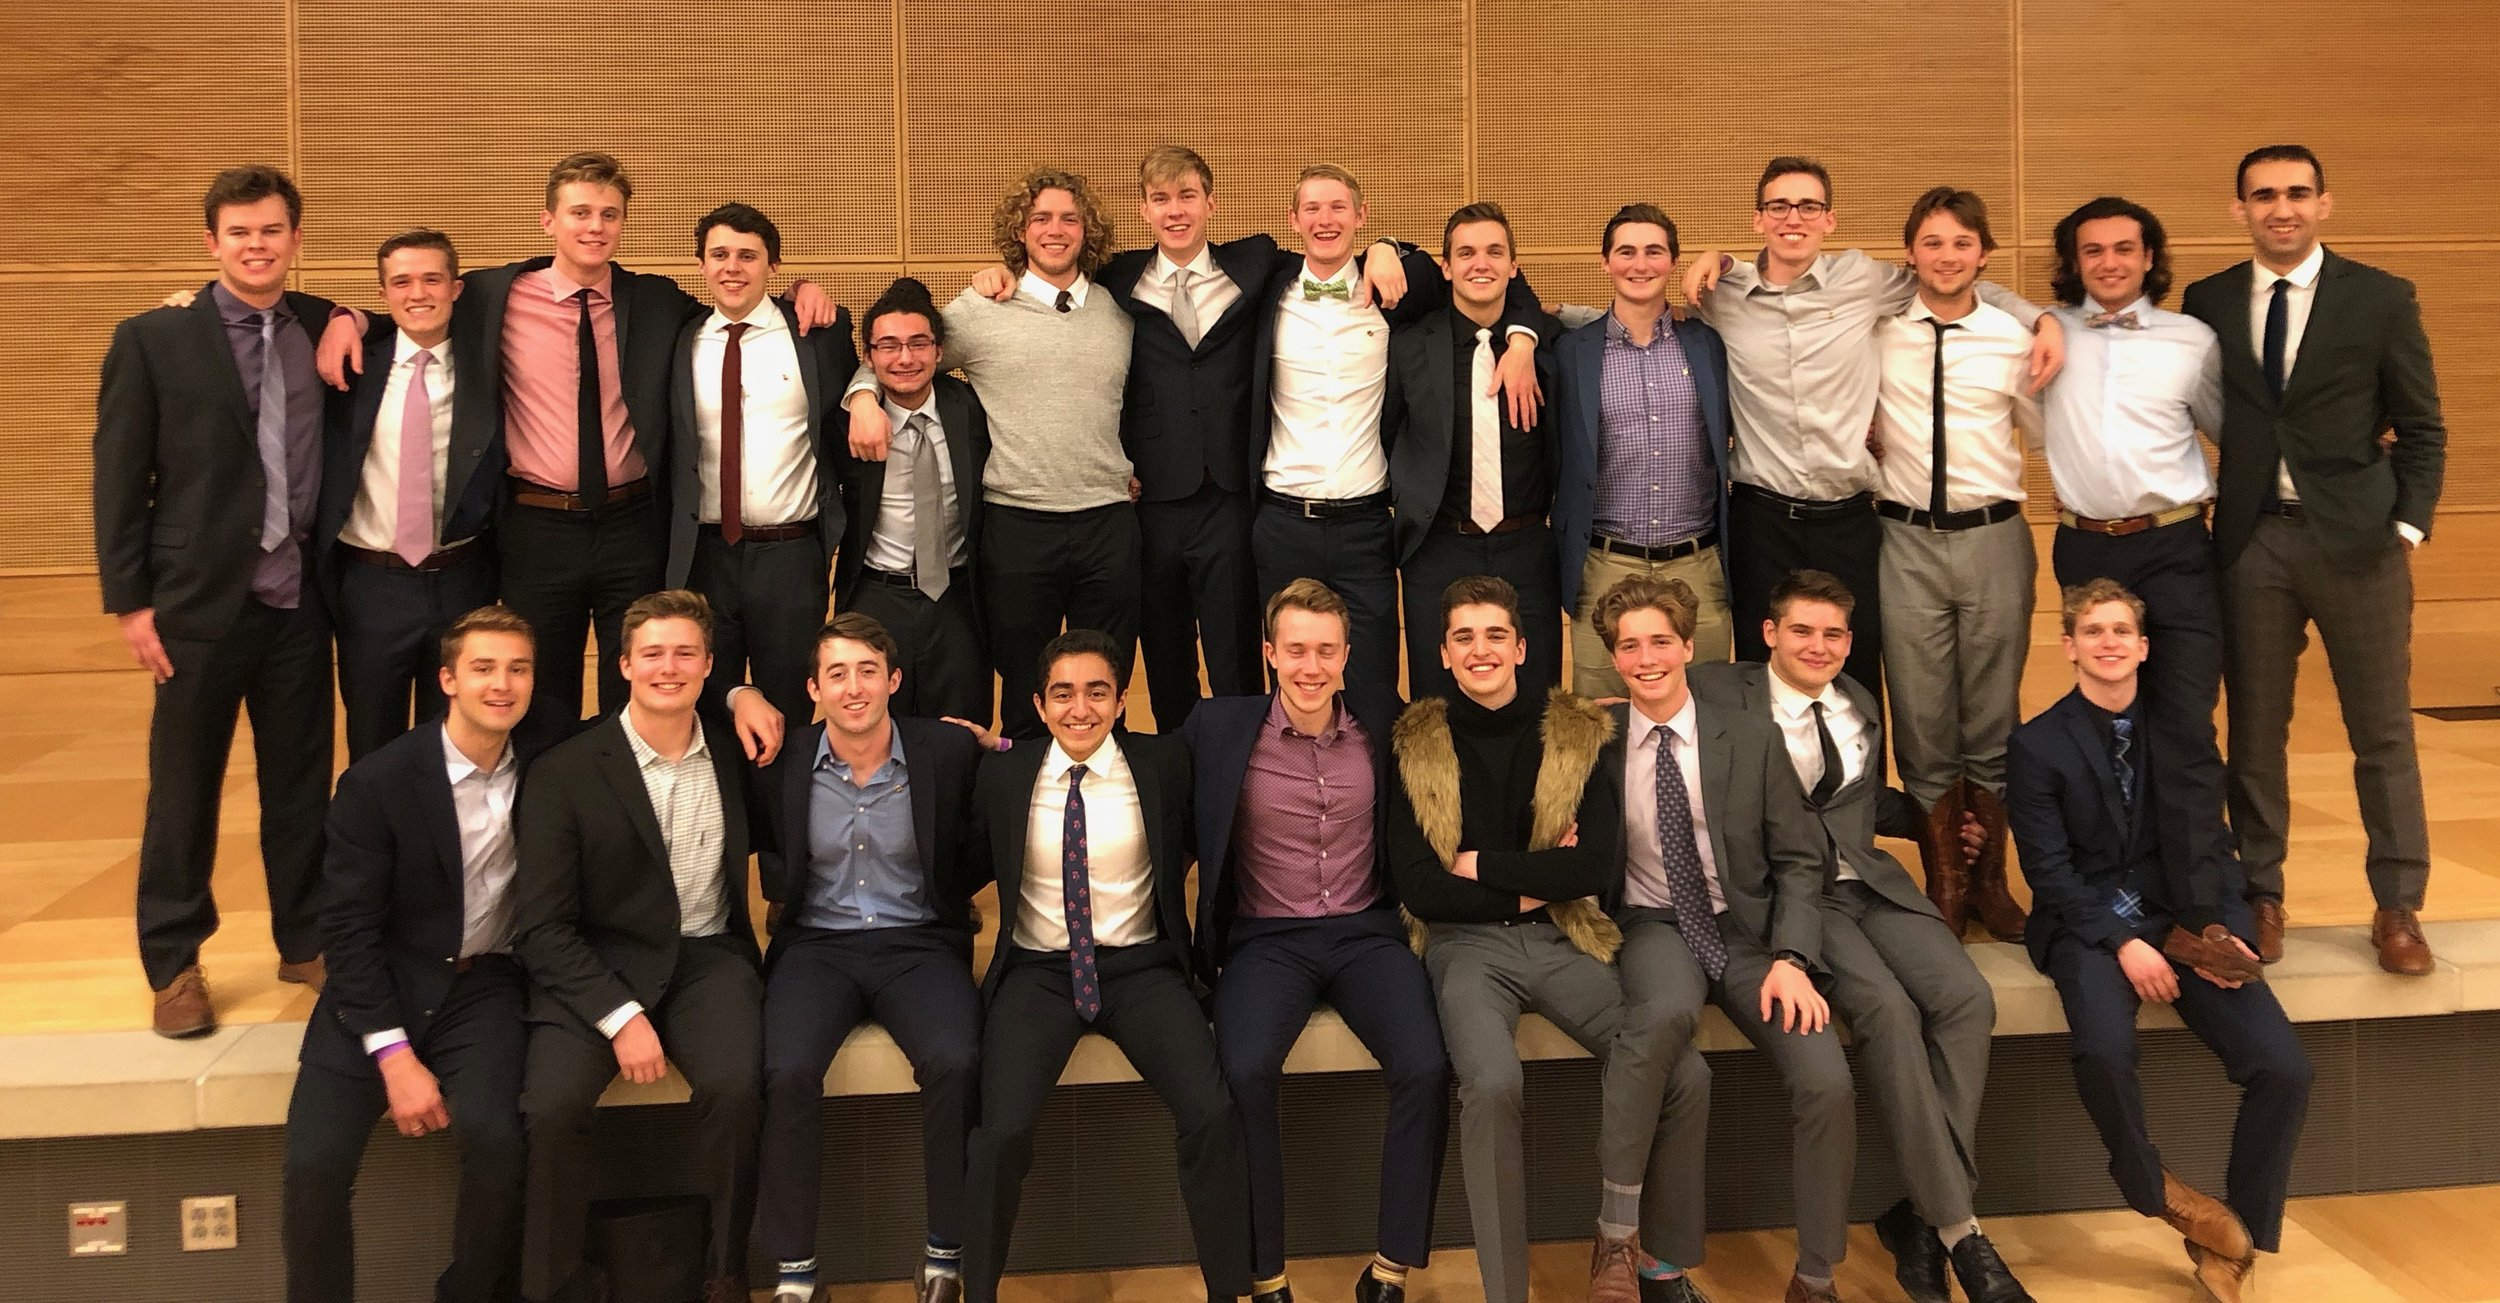 Initiation Banquet  - Following the initiation of the newest class we celebrate with the brothers from every class alumni or active. We welcome in the newest class as the previous president gives the reigns to the new one.